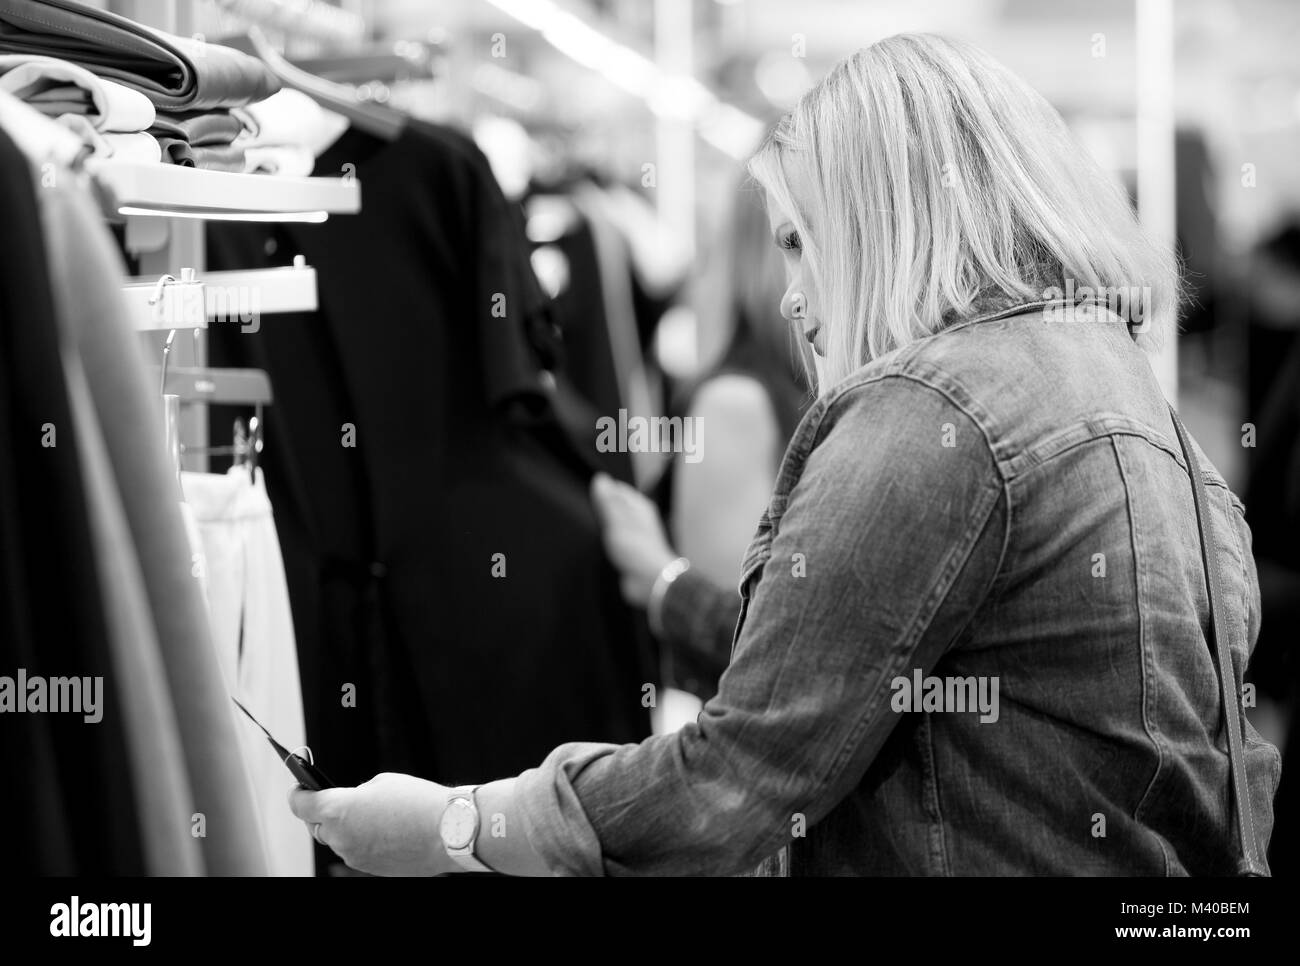 A female shopper examines a tag on an item of clothing in a retail store. - Stock Image